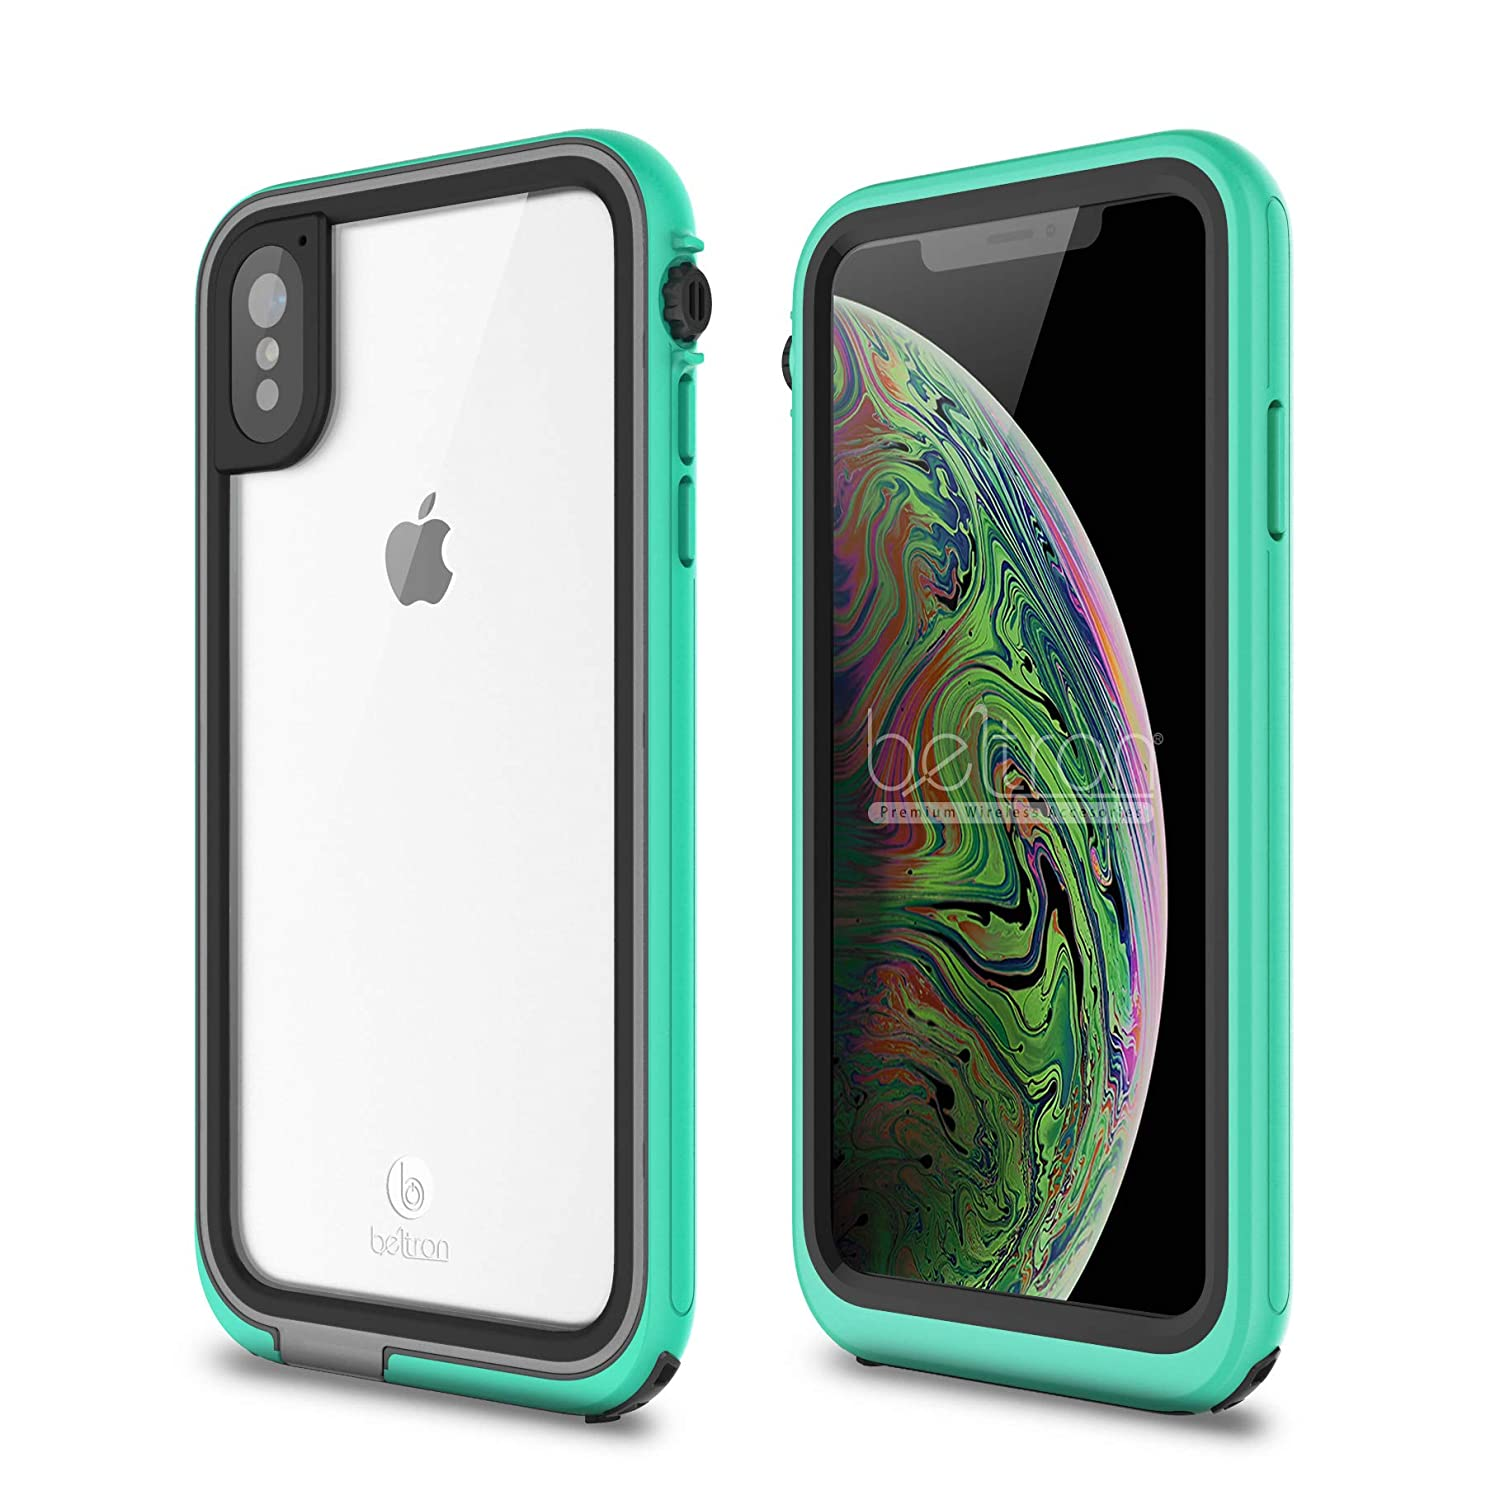 low priced e3a10 0780f BELTRON aquaLife iPhone Xs MAX Waterproof, Shock & Drop Proof, Dirt Proof,  Heavy Duty Case (IP68 Rated, MIL-STD-810G Certified) Features: Built-in ...